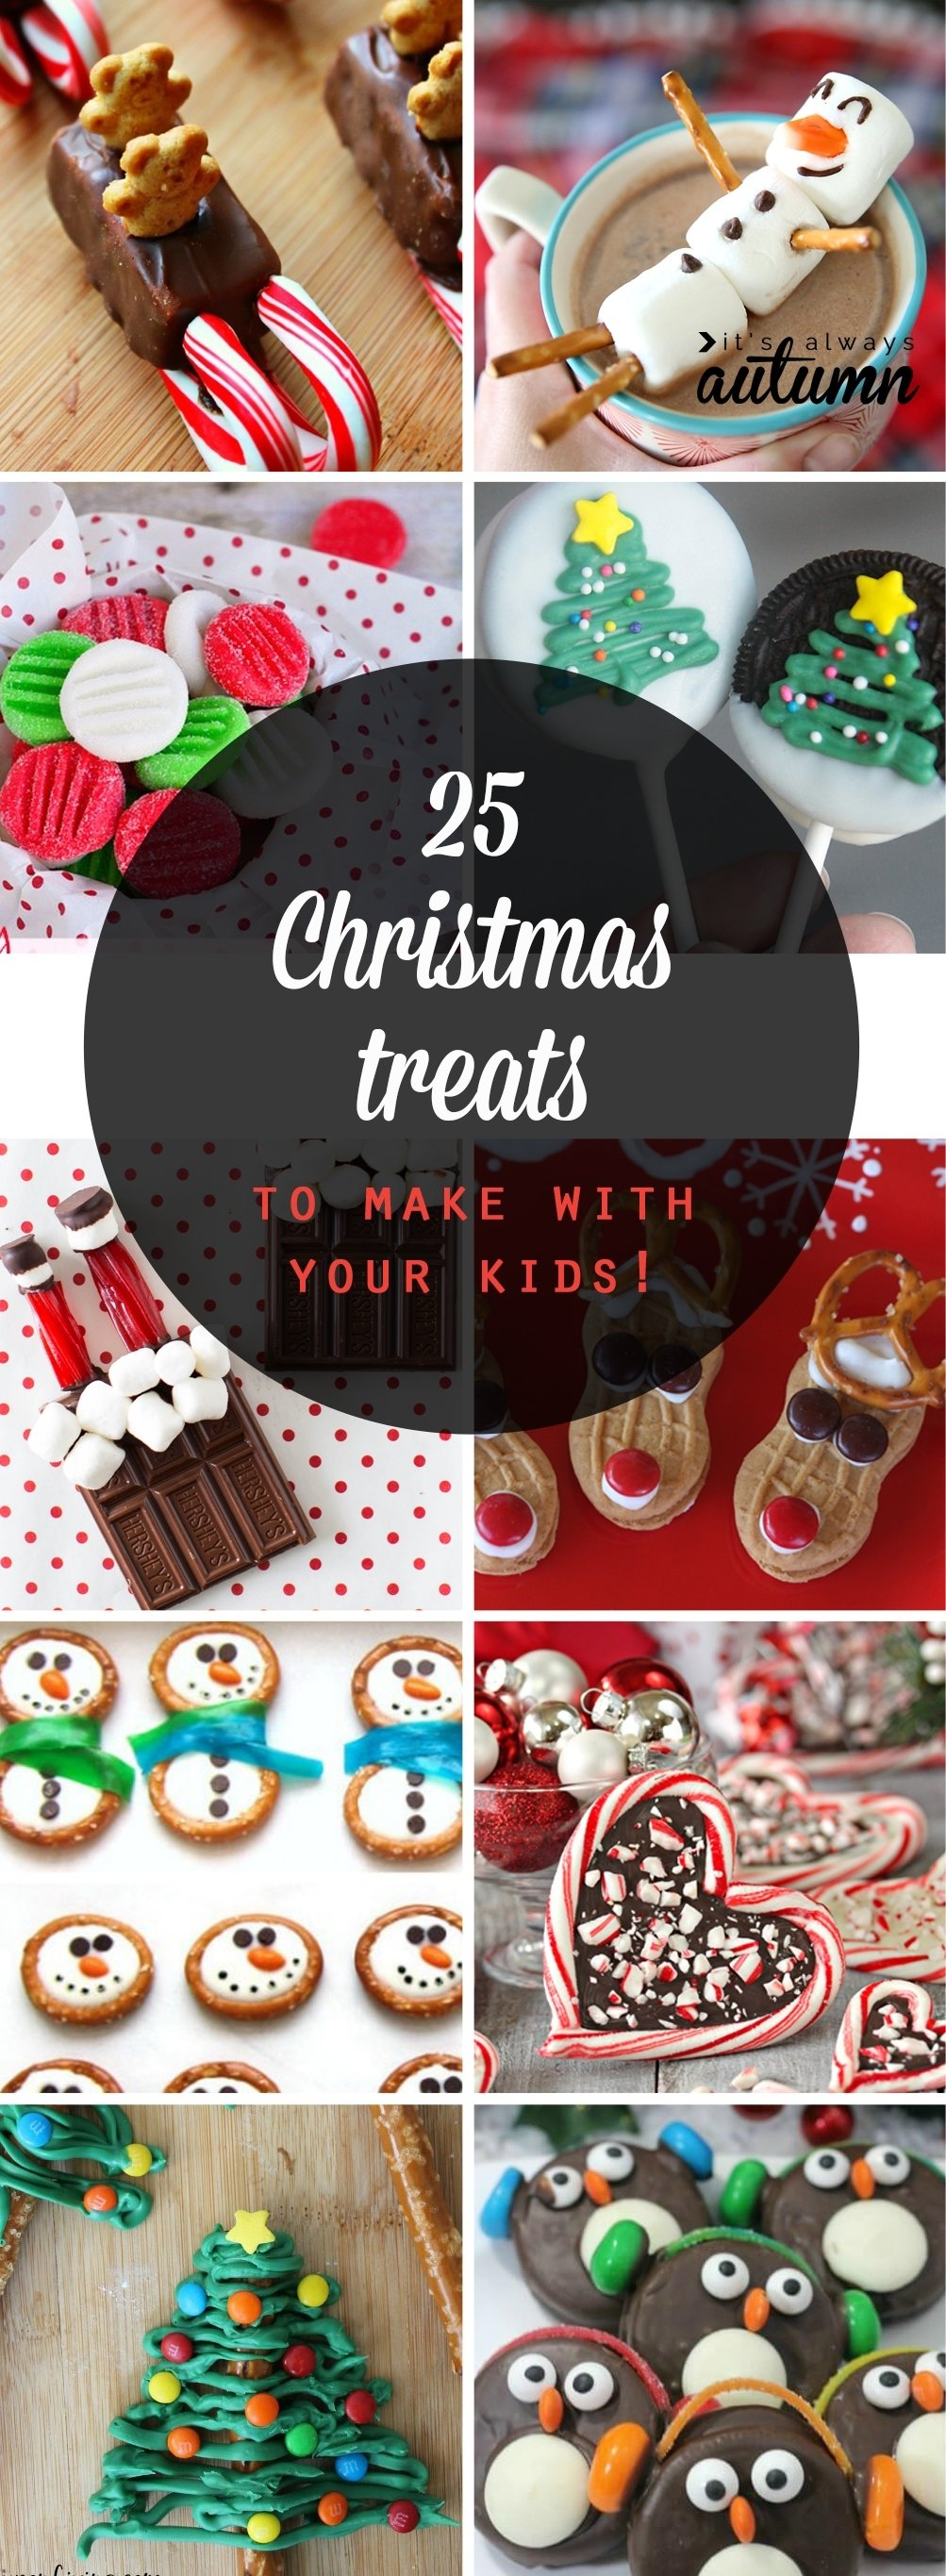 10 Attractive Christmas Treat Ideas For Kids 25 adorable christmas treats to make with your kids its always autumn